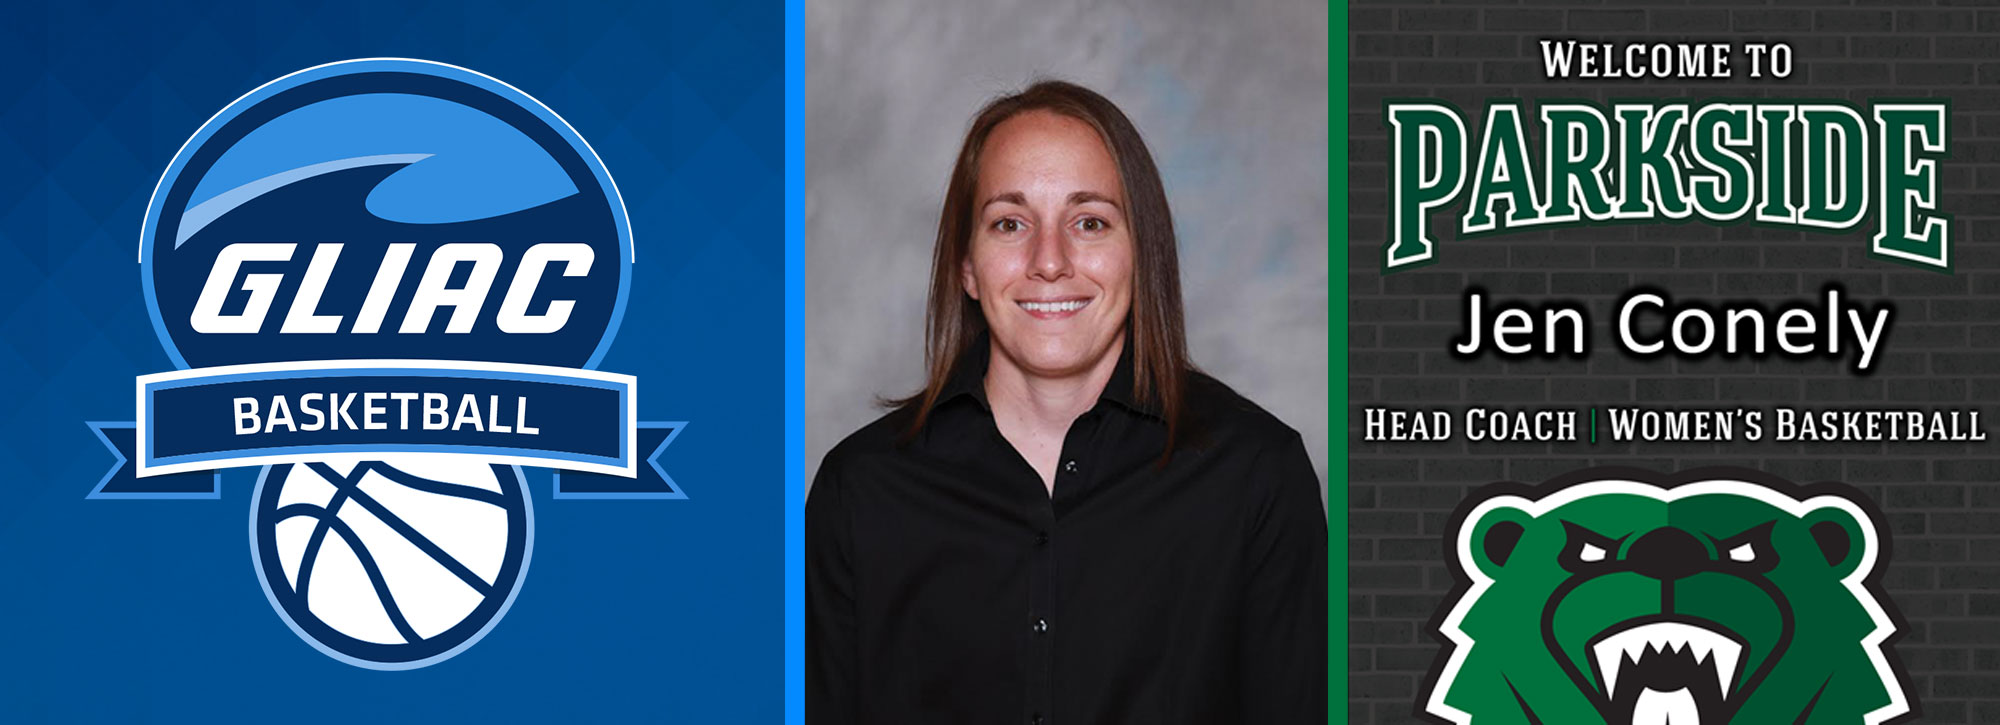 Parkside Names Jen Conely Women's Basketball Head Coach